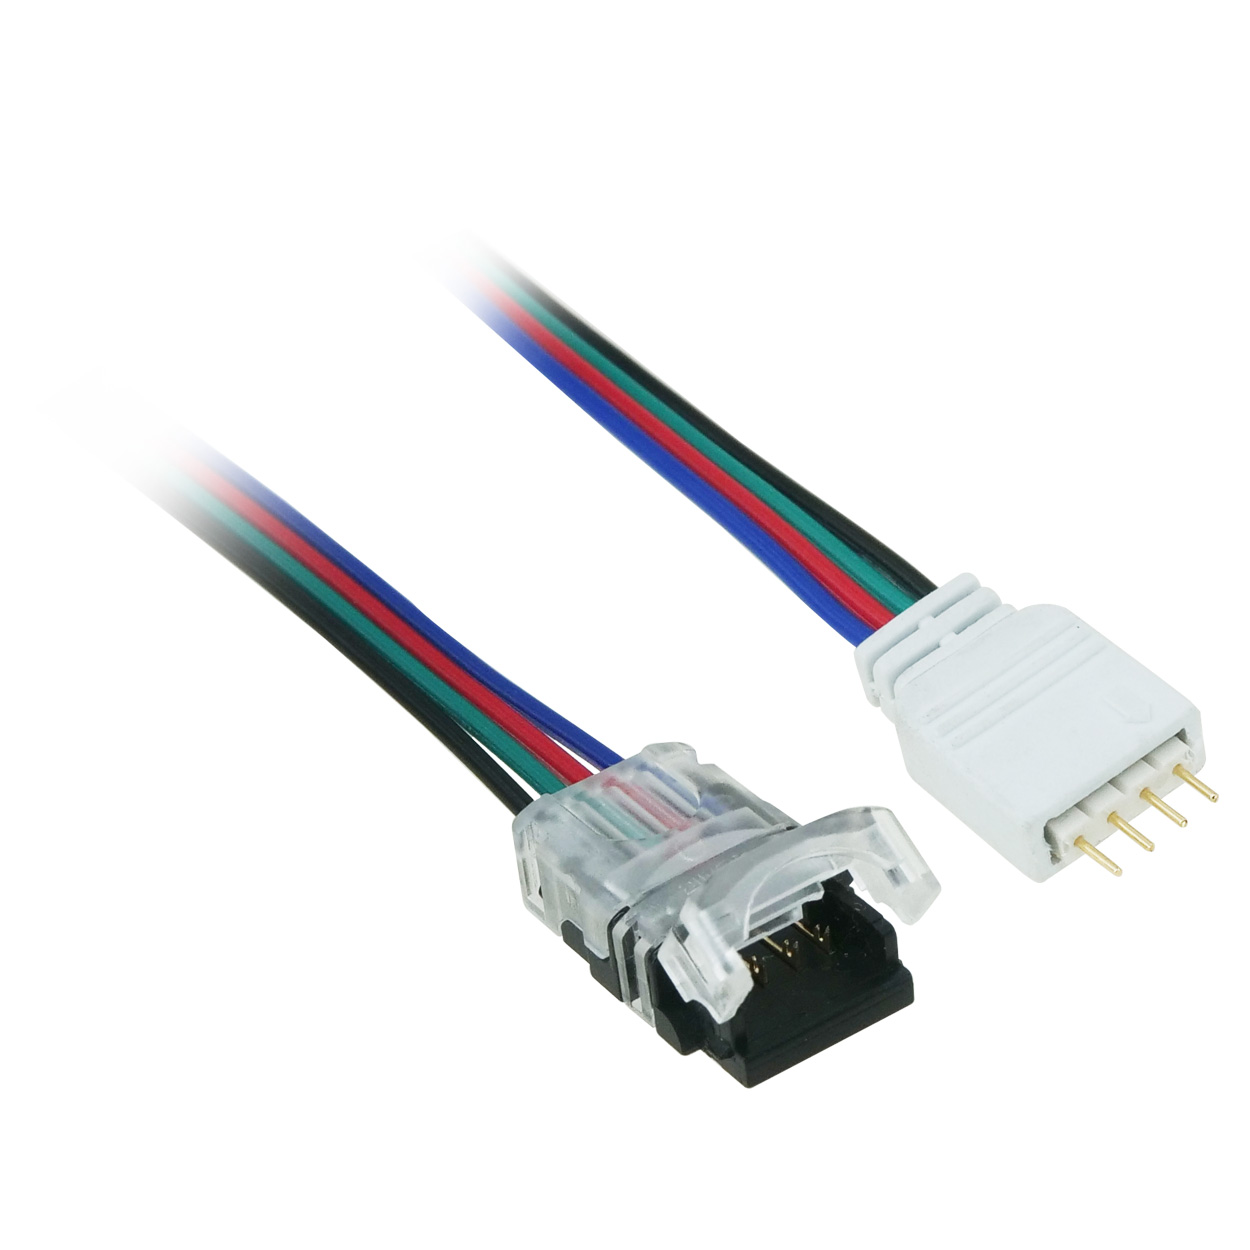 hight resolution of 1ft 4 pin led power connector to rgb led light strip cut end pi manufacturing